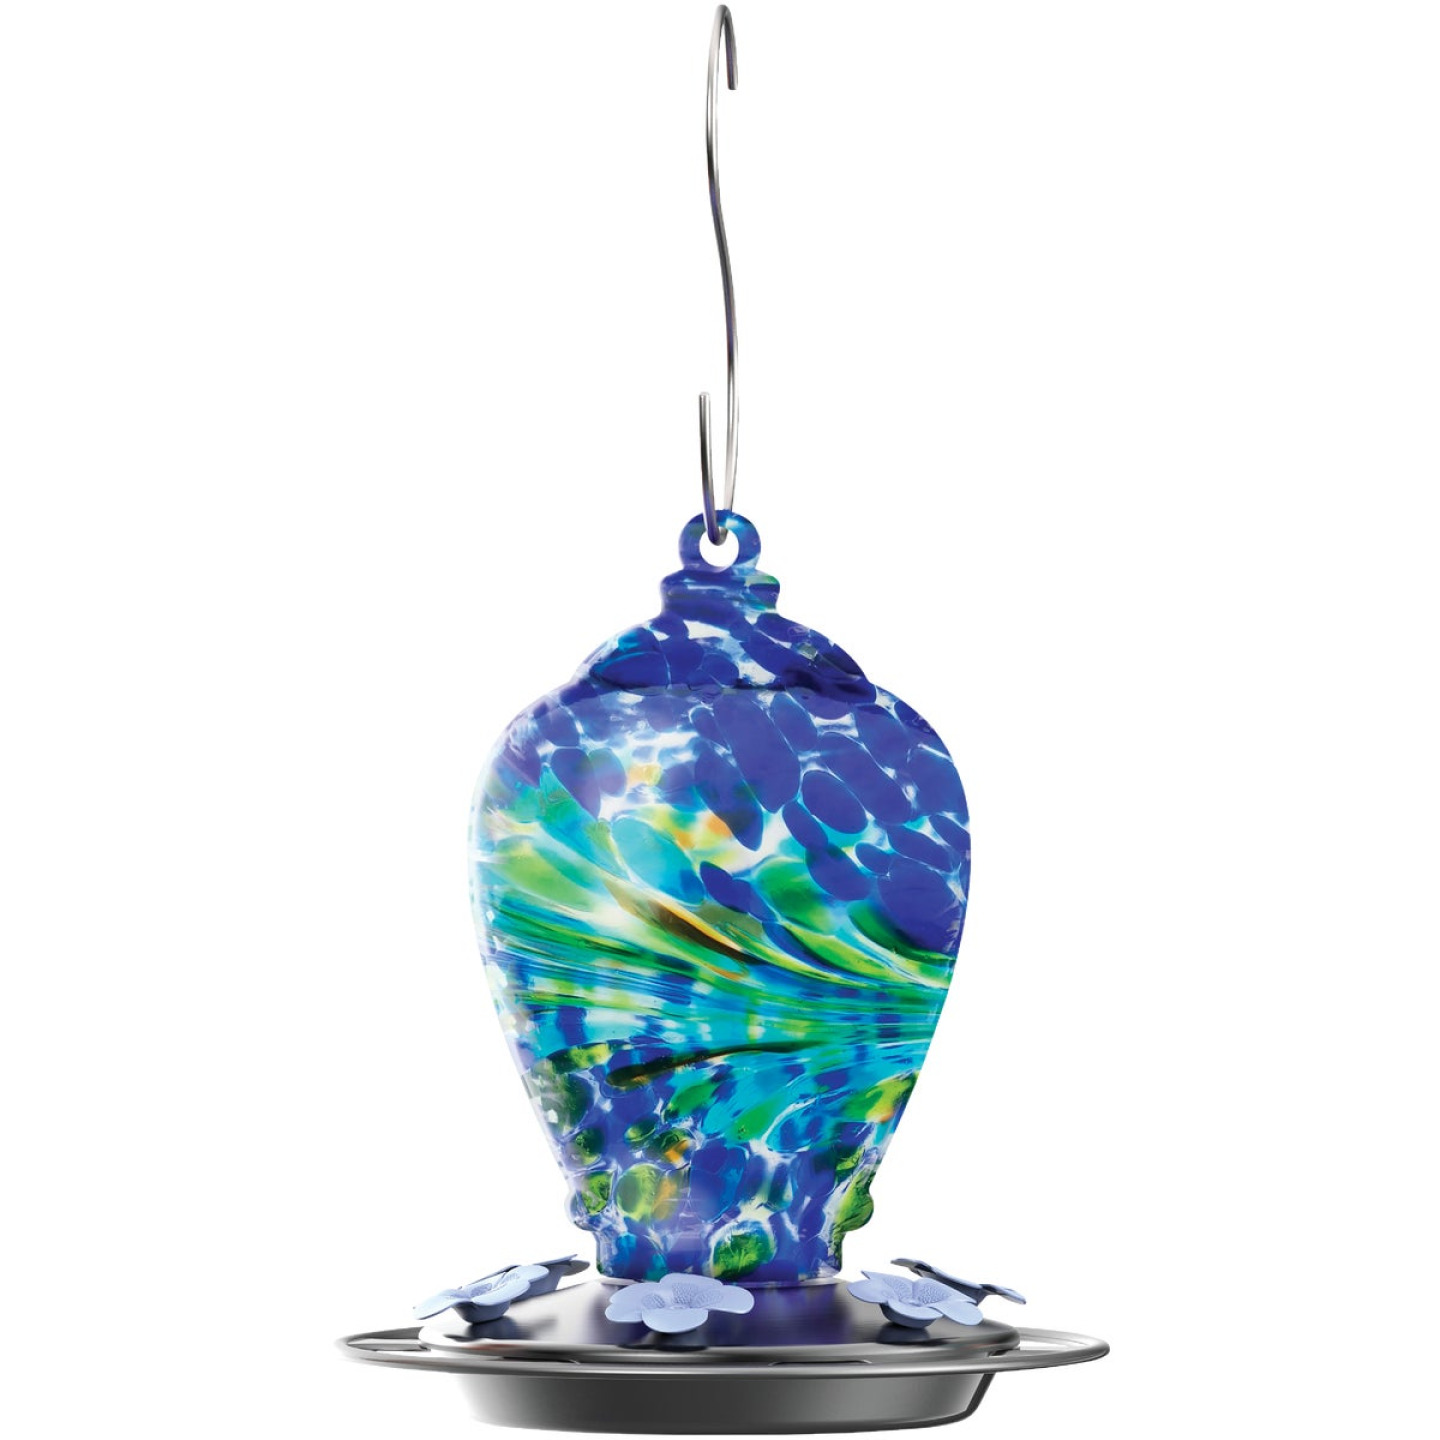 Nature's Way Artisan Gravity Glass Hummingbird Feeder Image 1